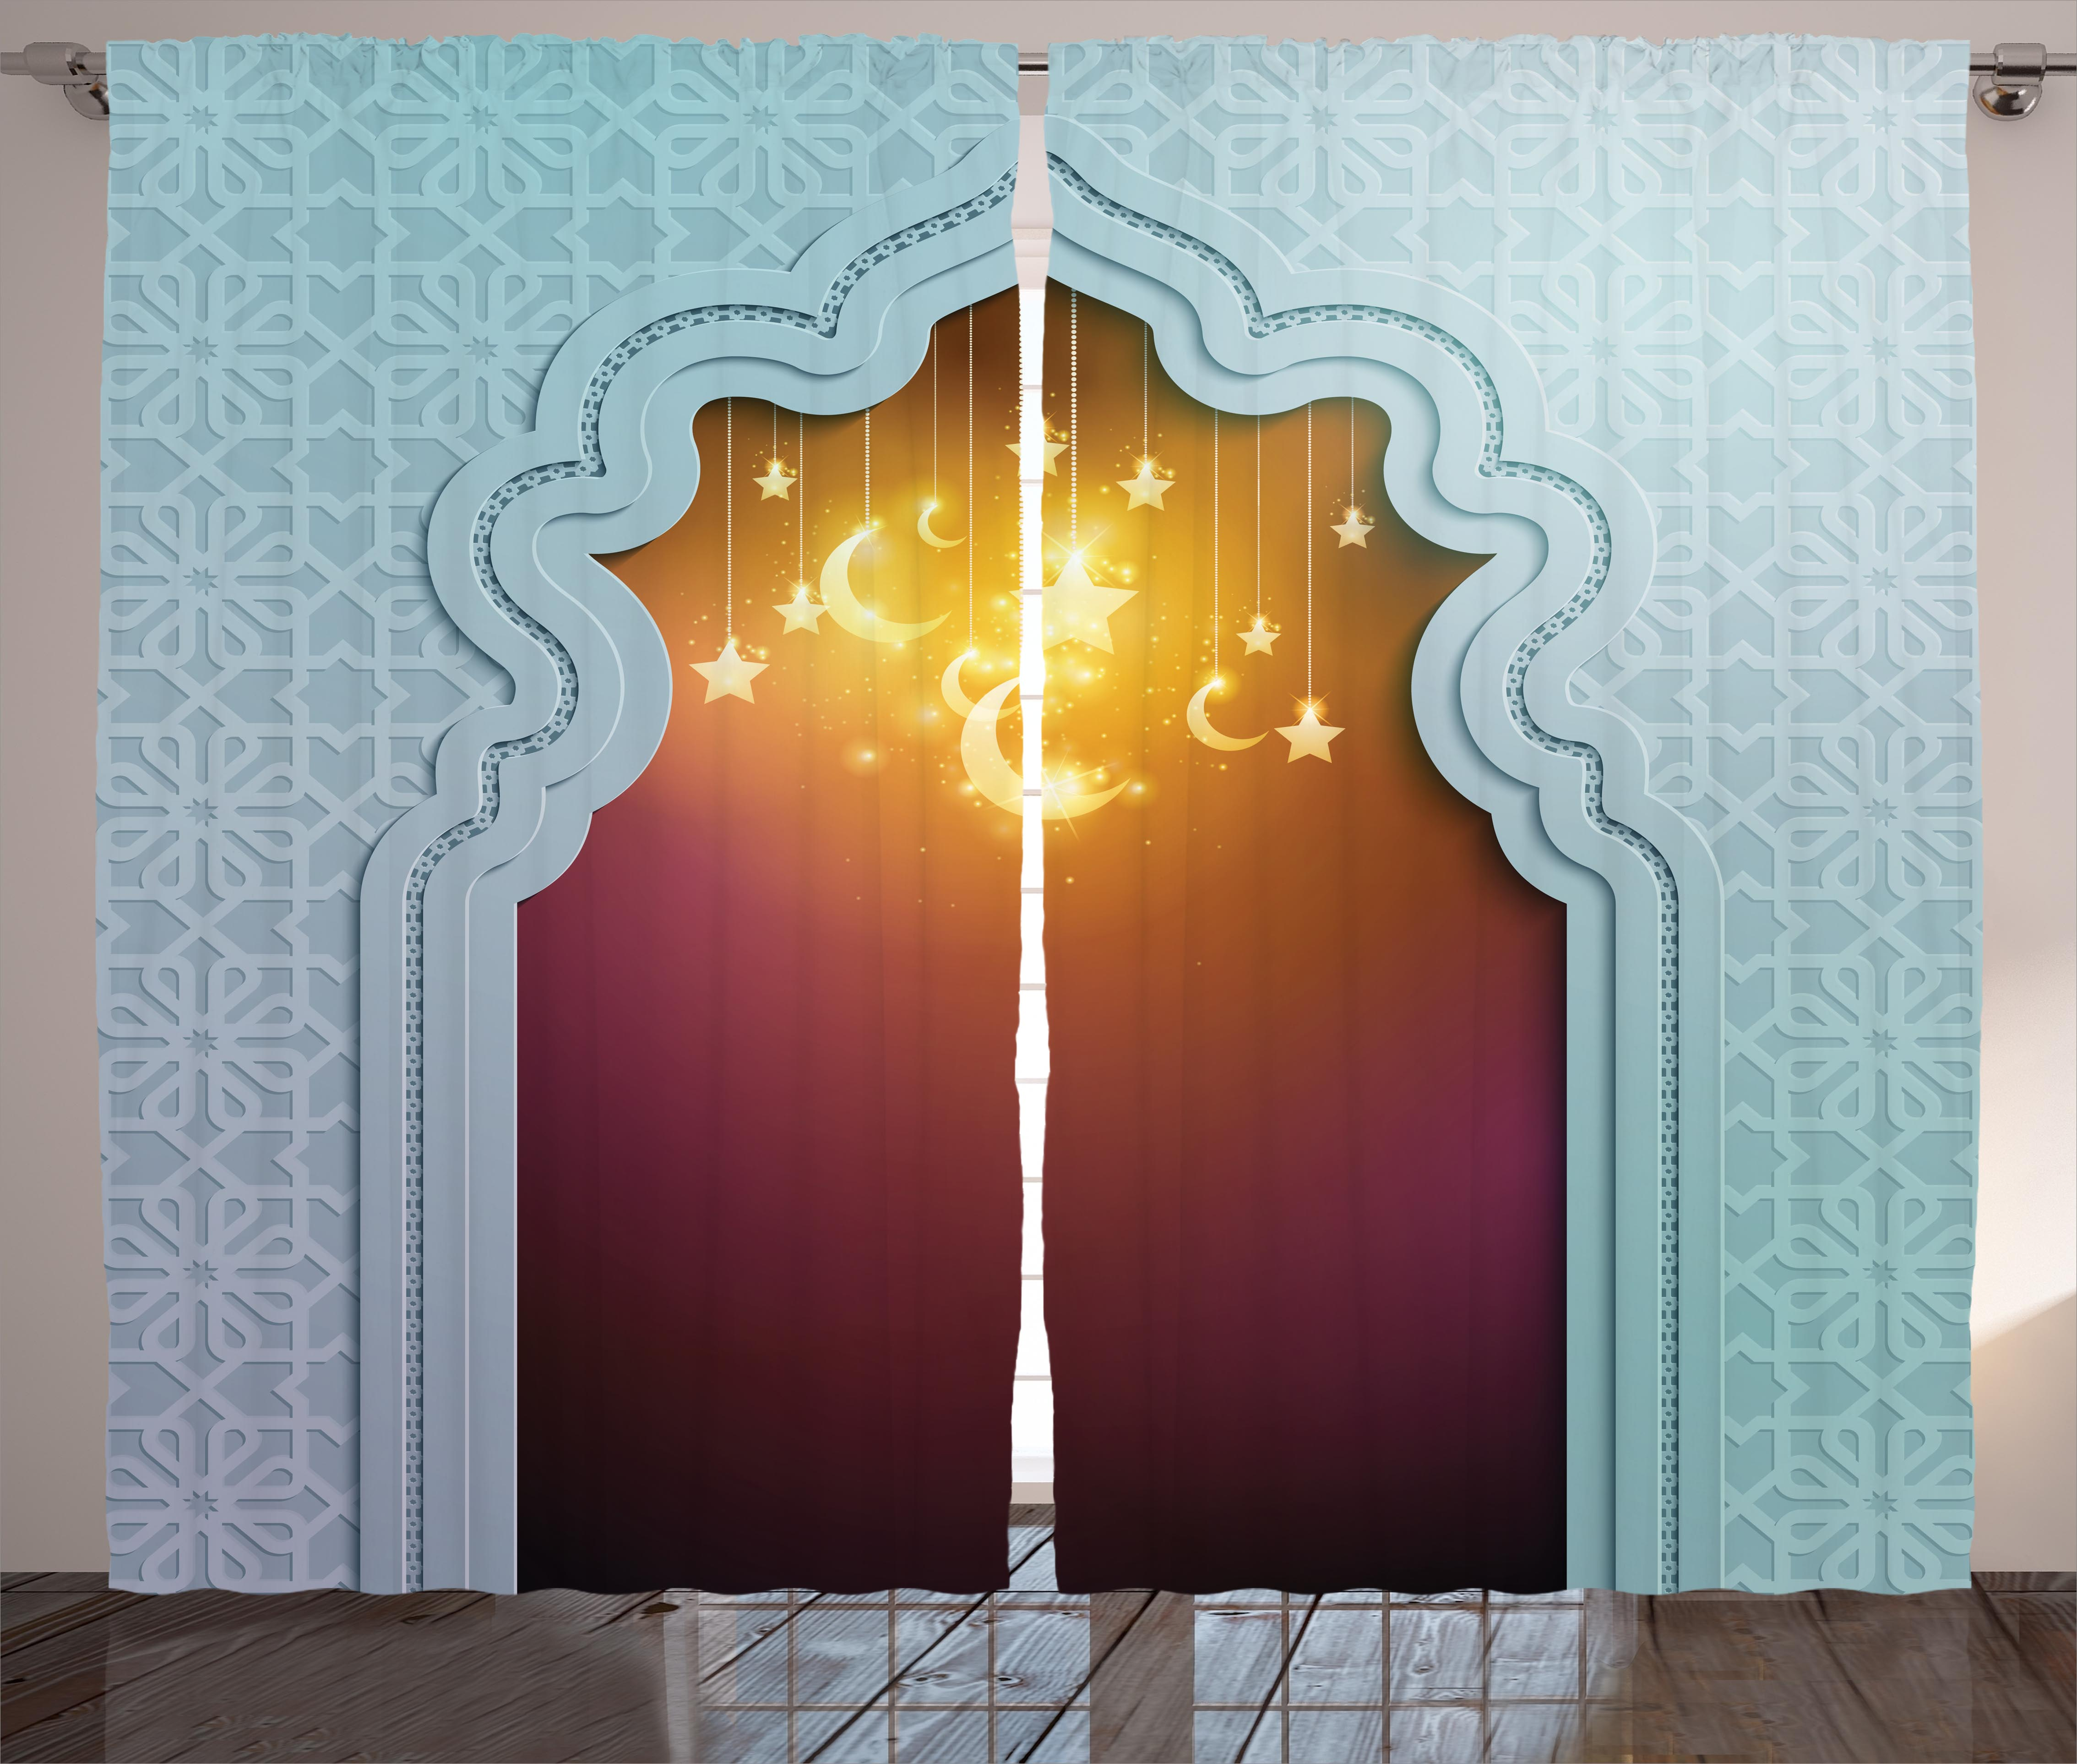 Moroccan Curtains 2 Panels Set, Mosque Door with Shiny Star and Moon Ornaments... by Kozmos